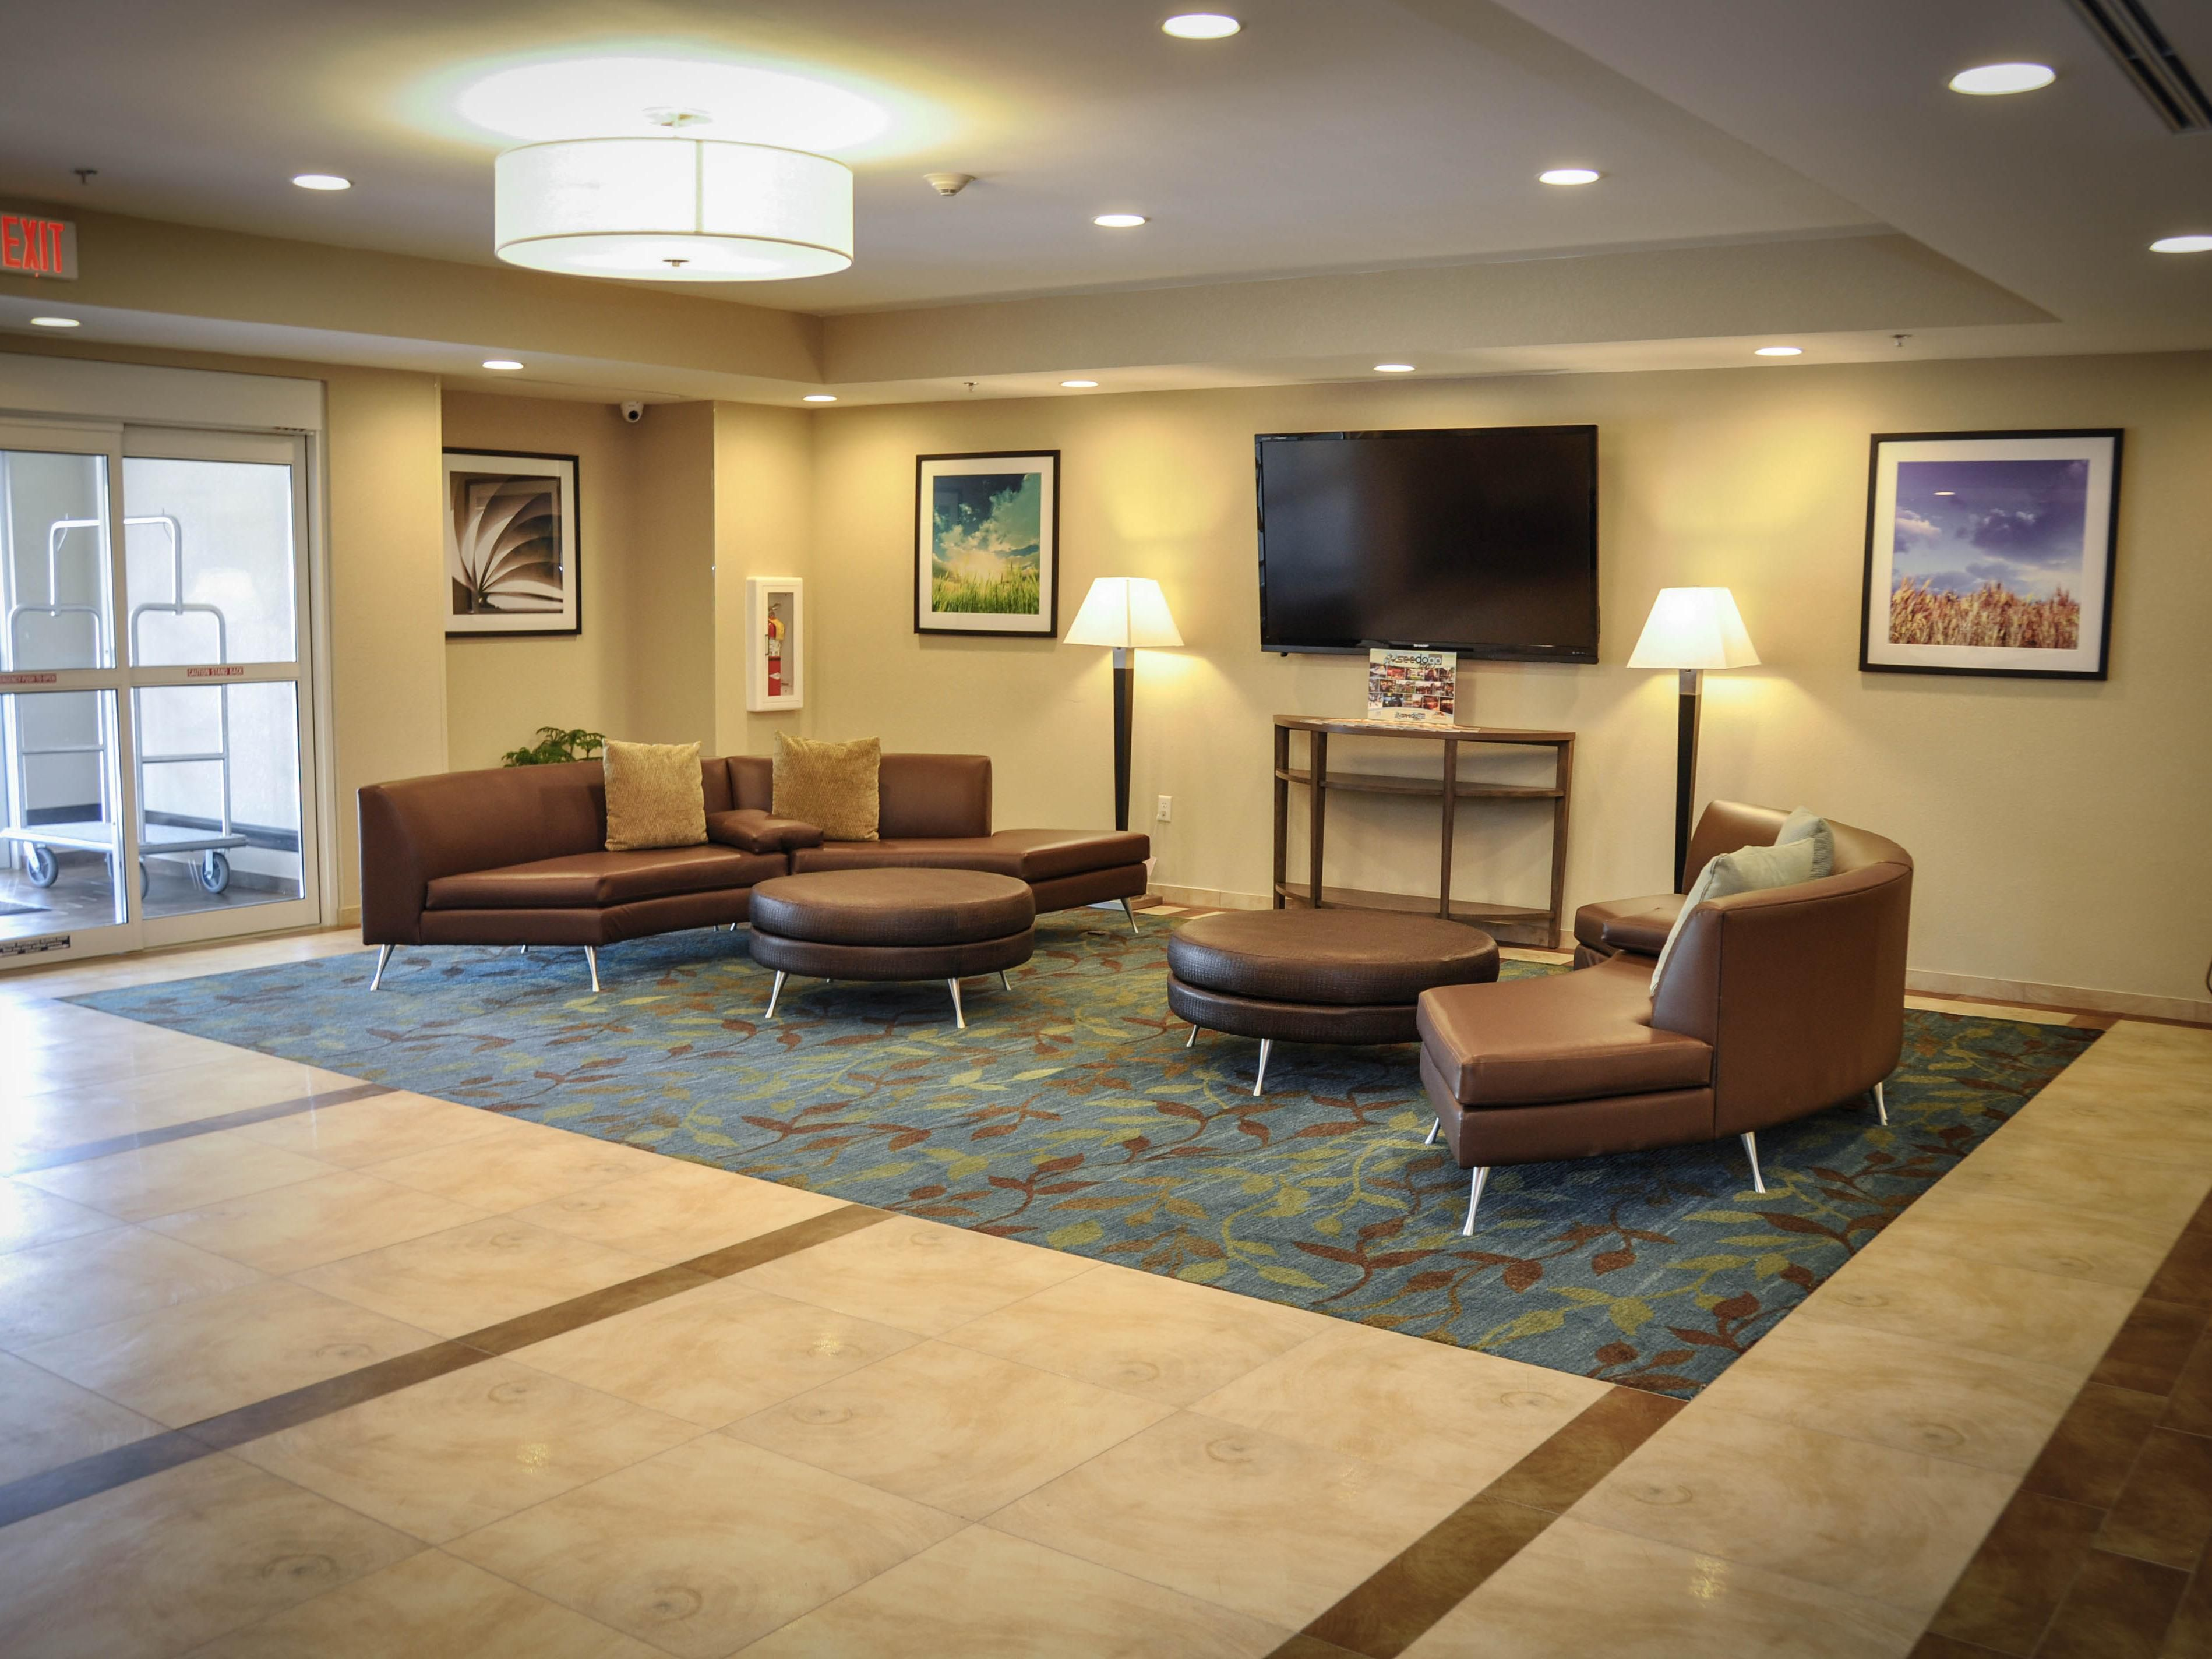 Columbus Hotels: Candlewood Suites Candlewood Suites : Columbus ...